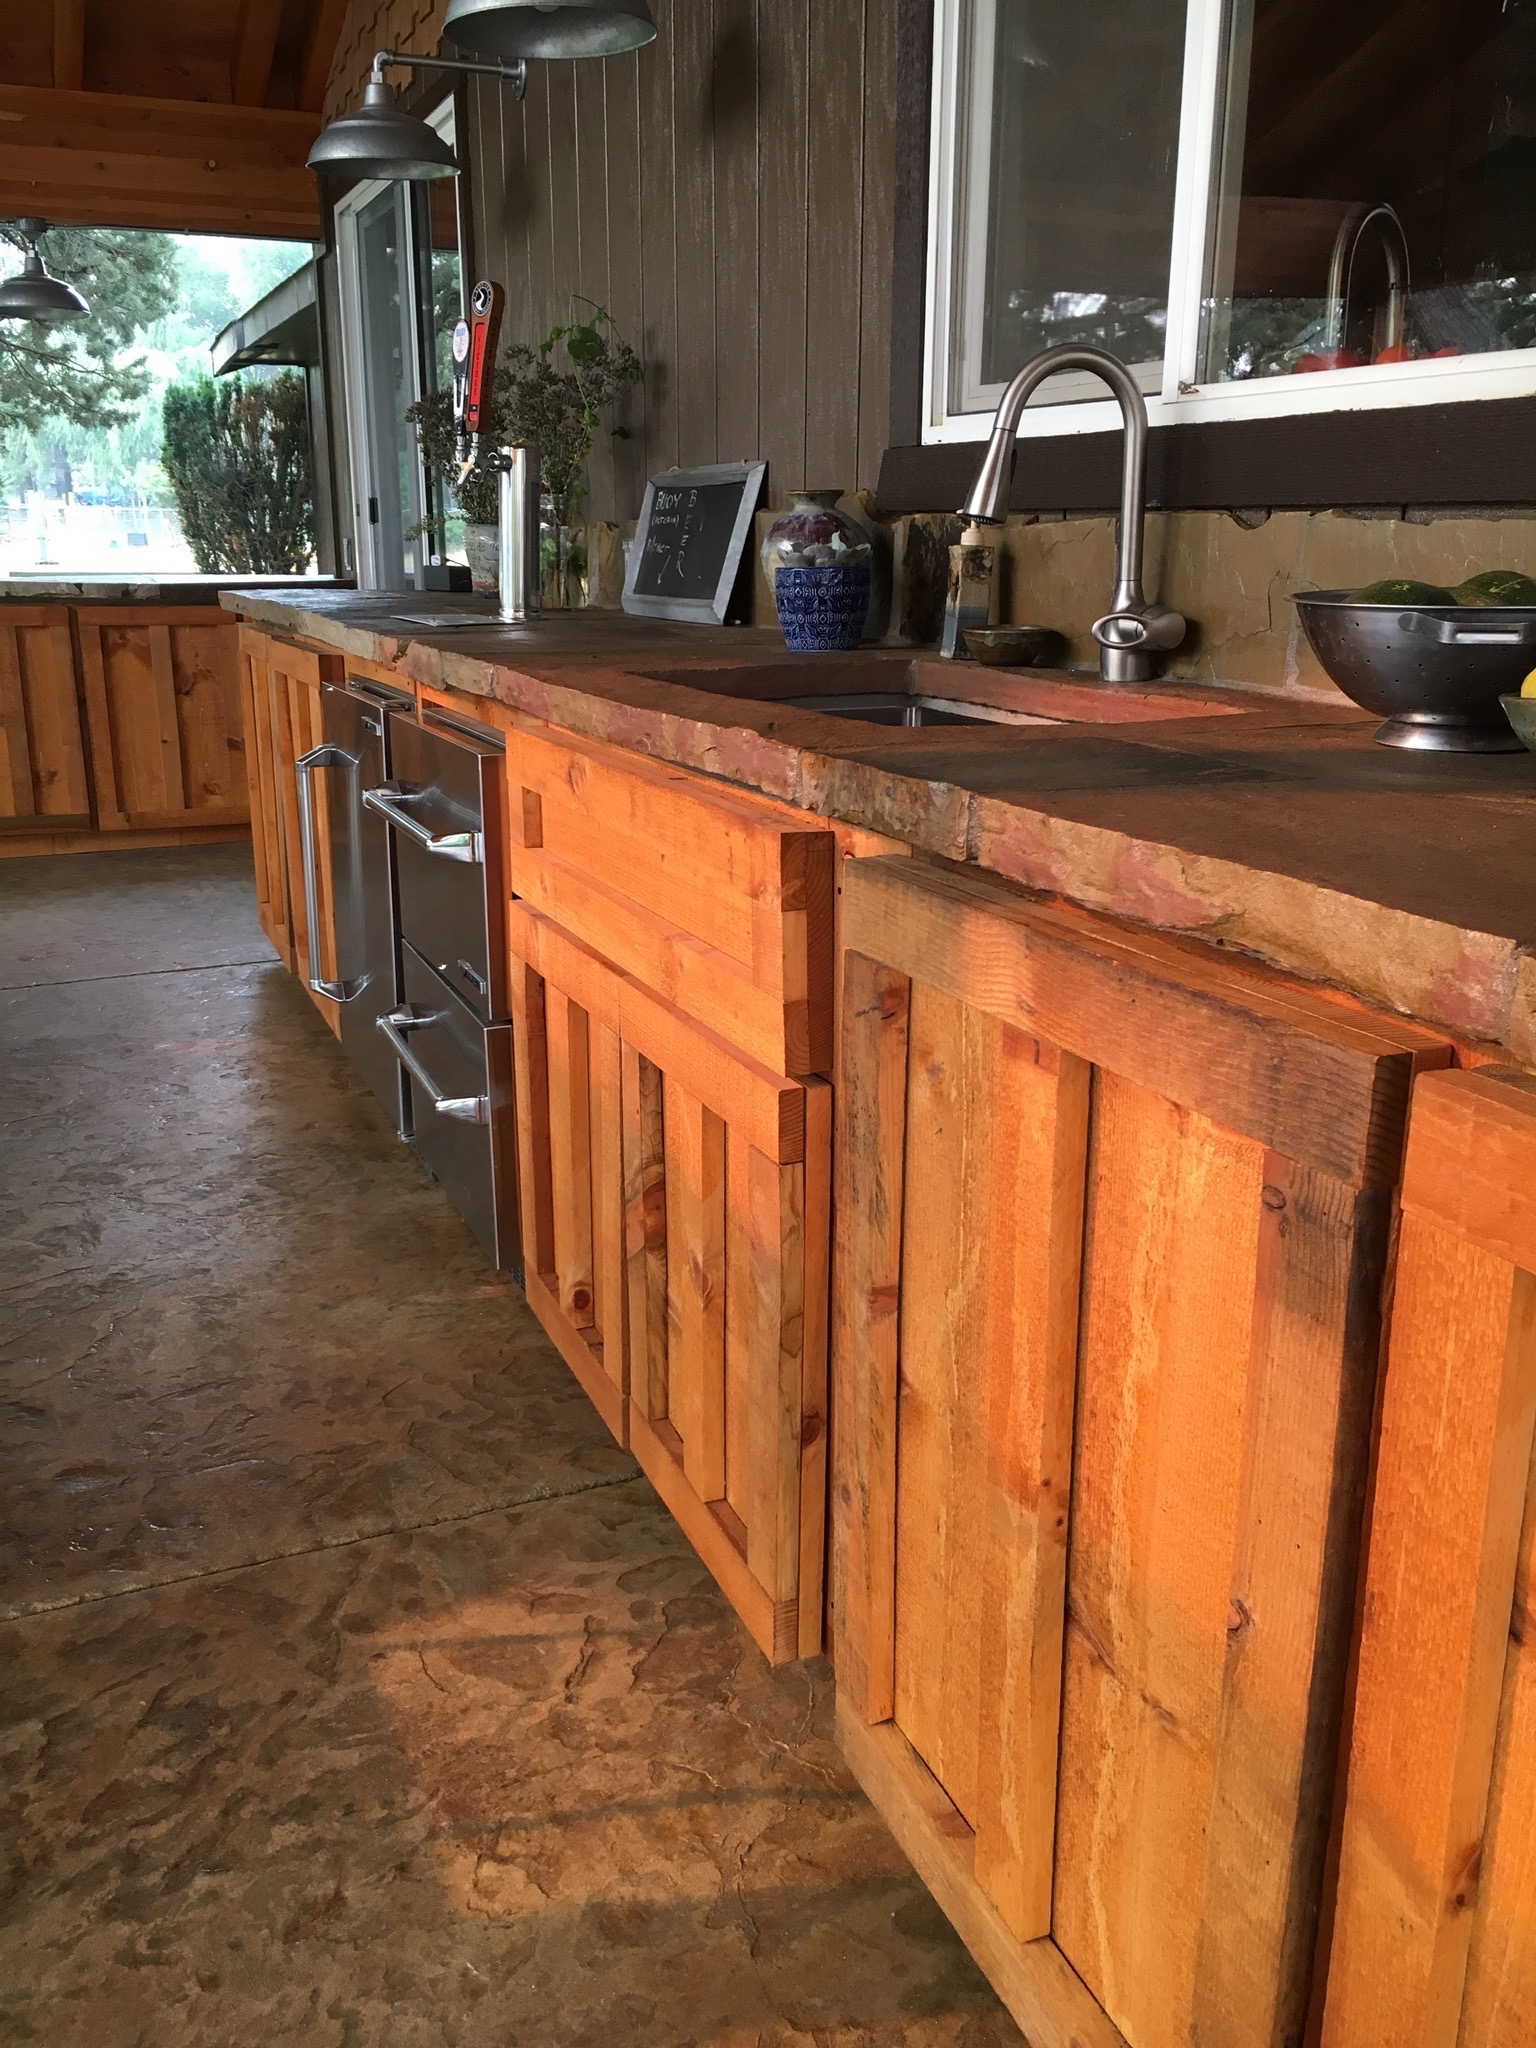 OutdoorKitchen.CustomCabinets.H2HandyPro